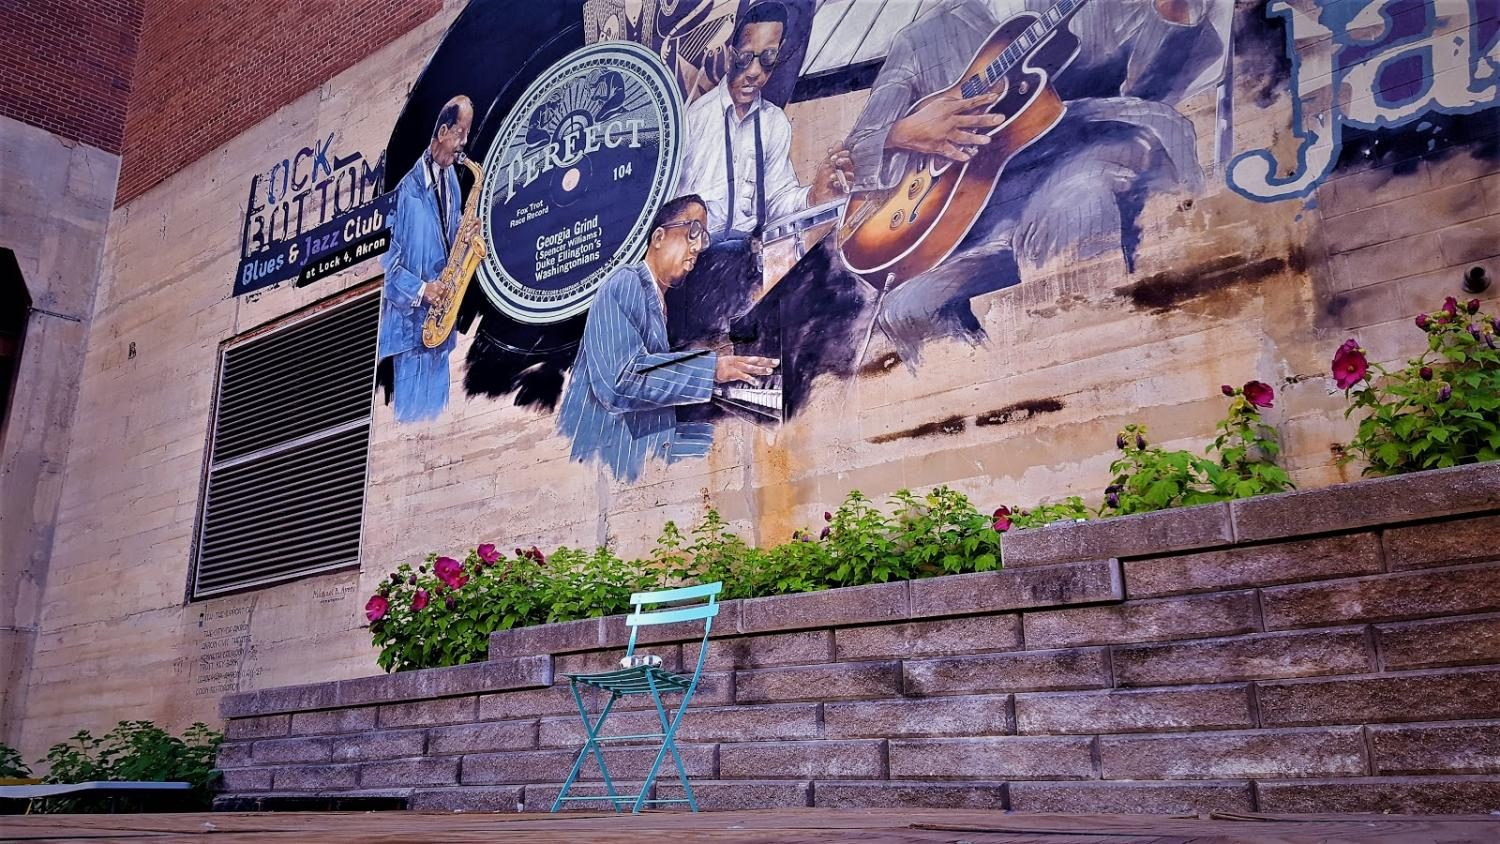 This mural outside the Civic Theater greets visitors   at the canal level of Lock 4 Park.